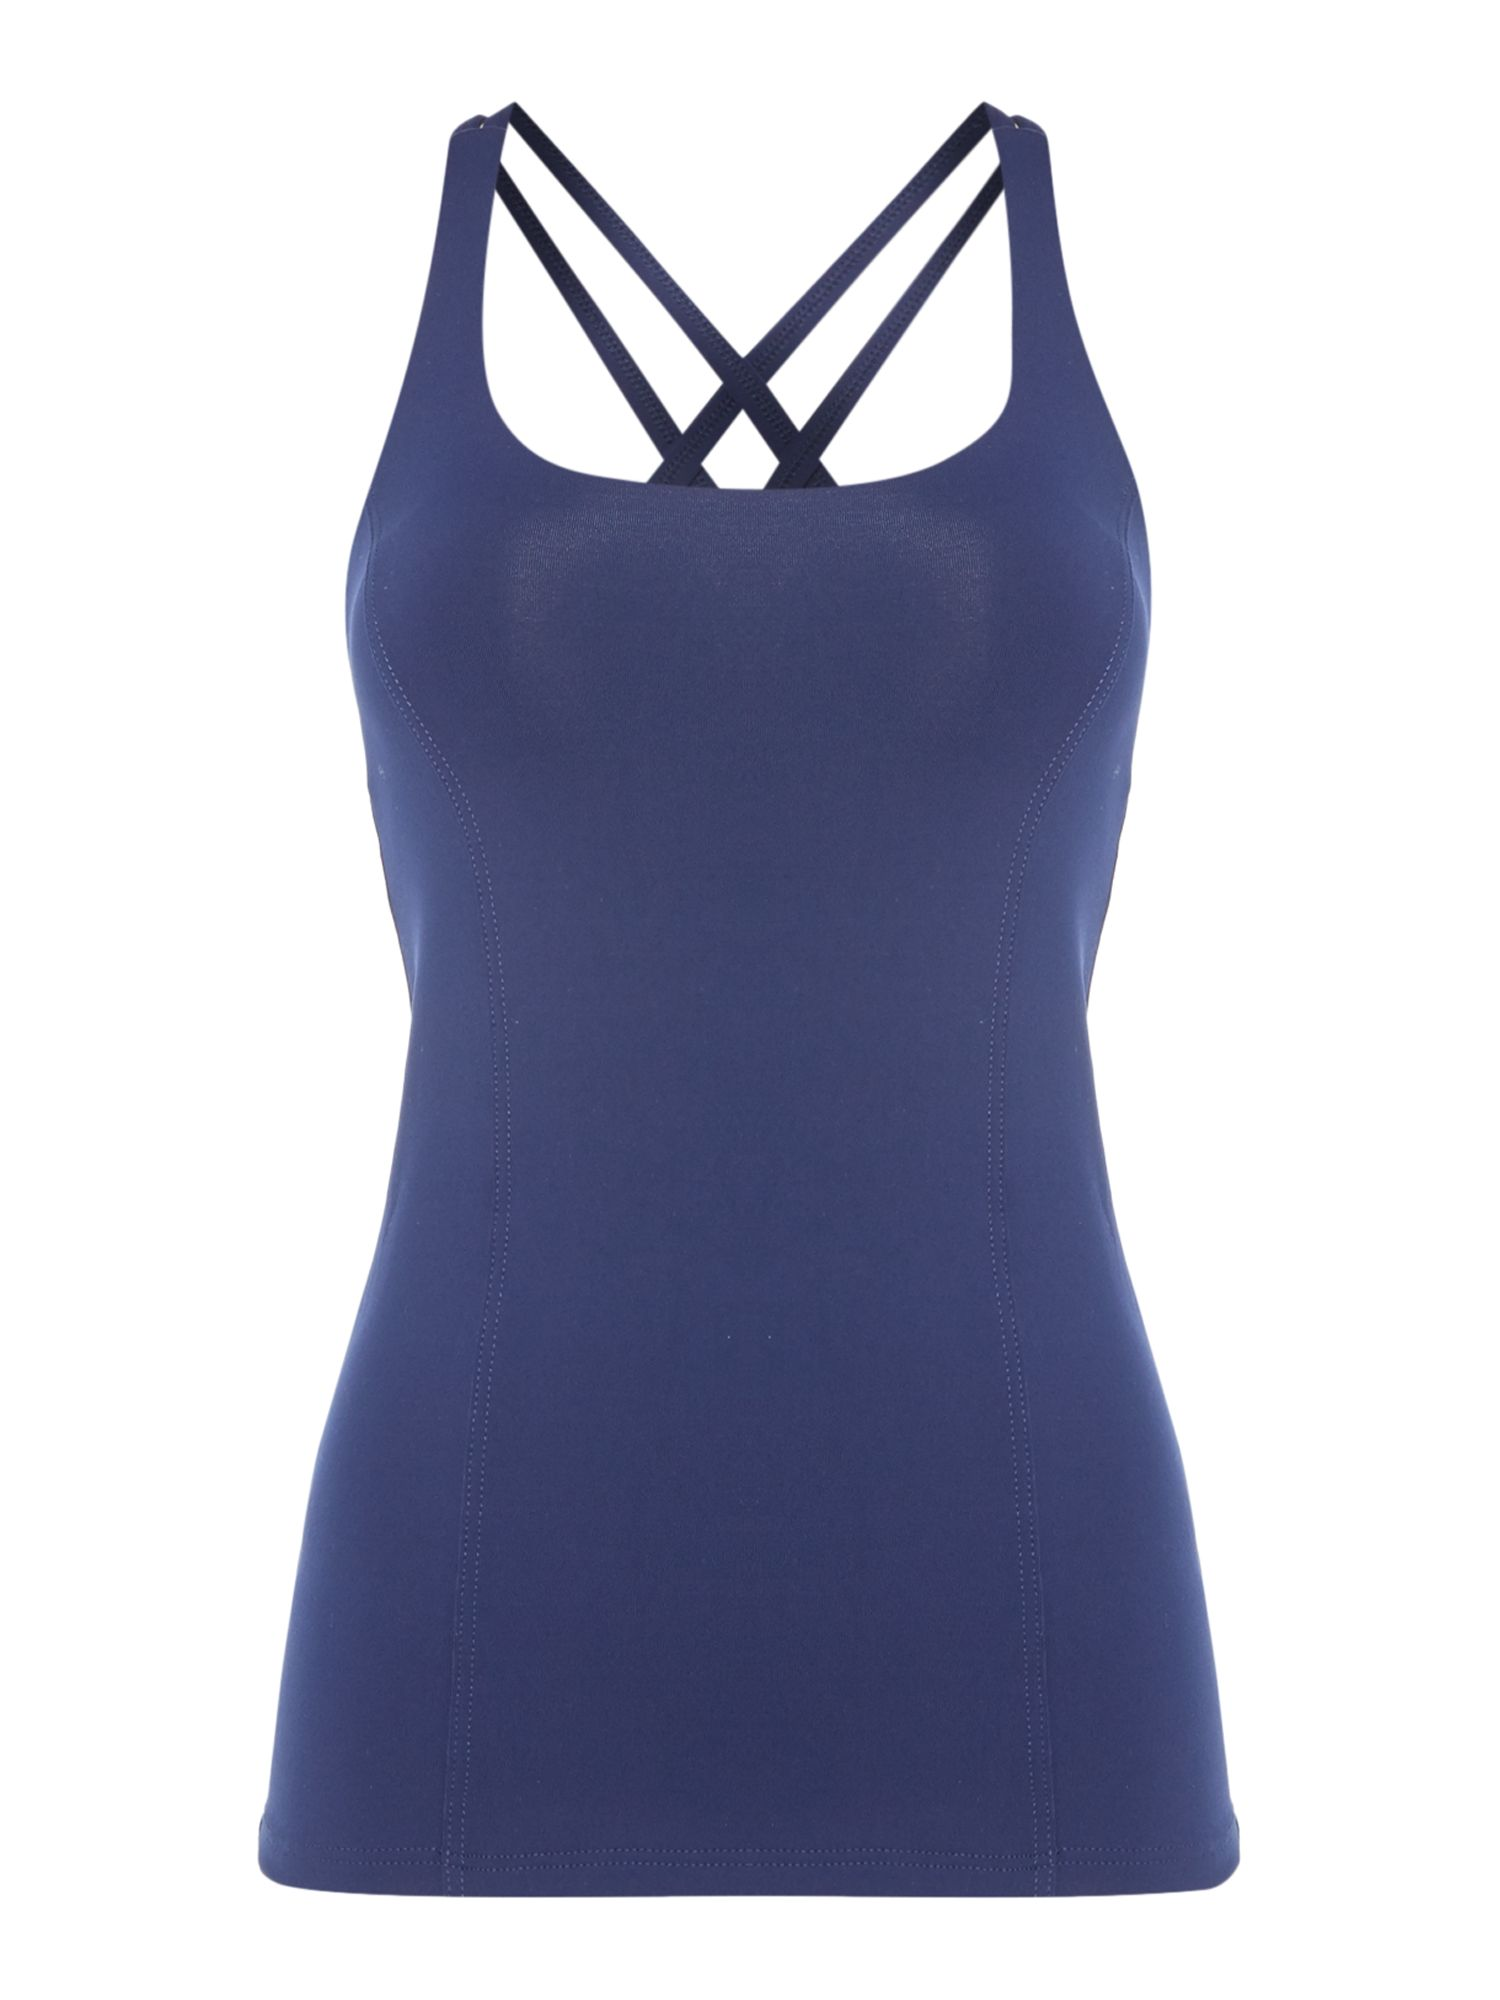 Dharma Bums Sports tank top, Blue